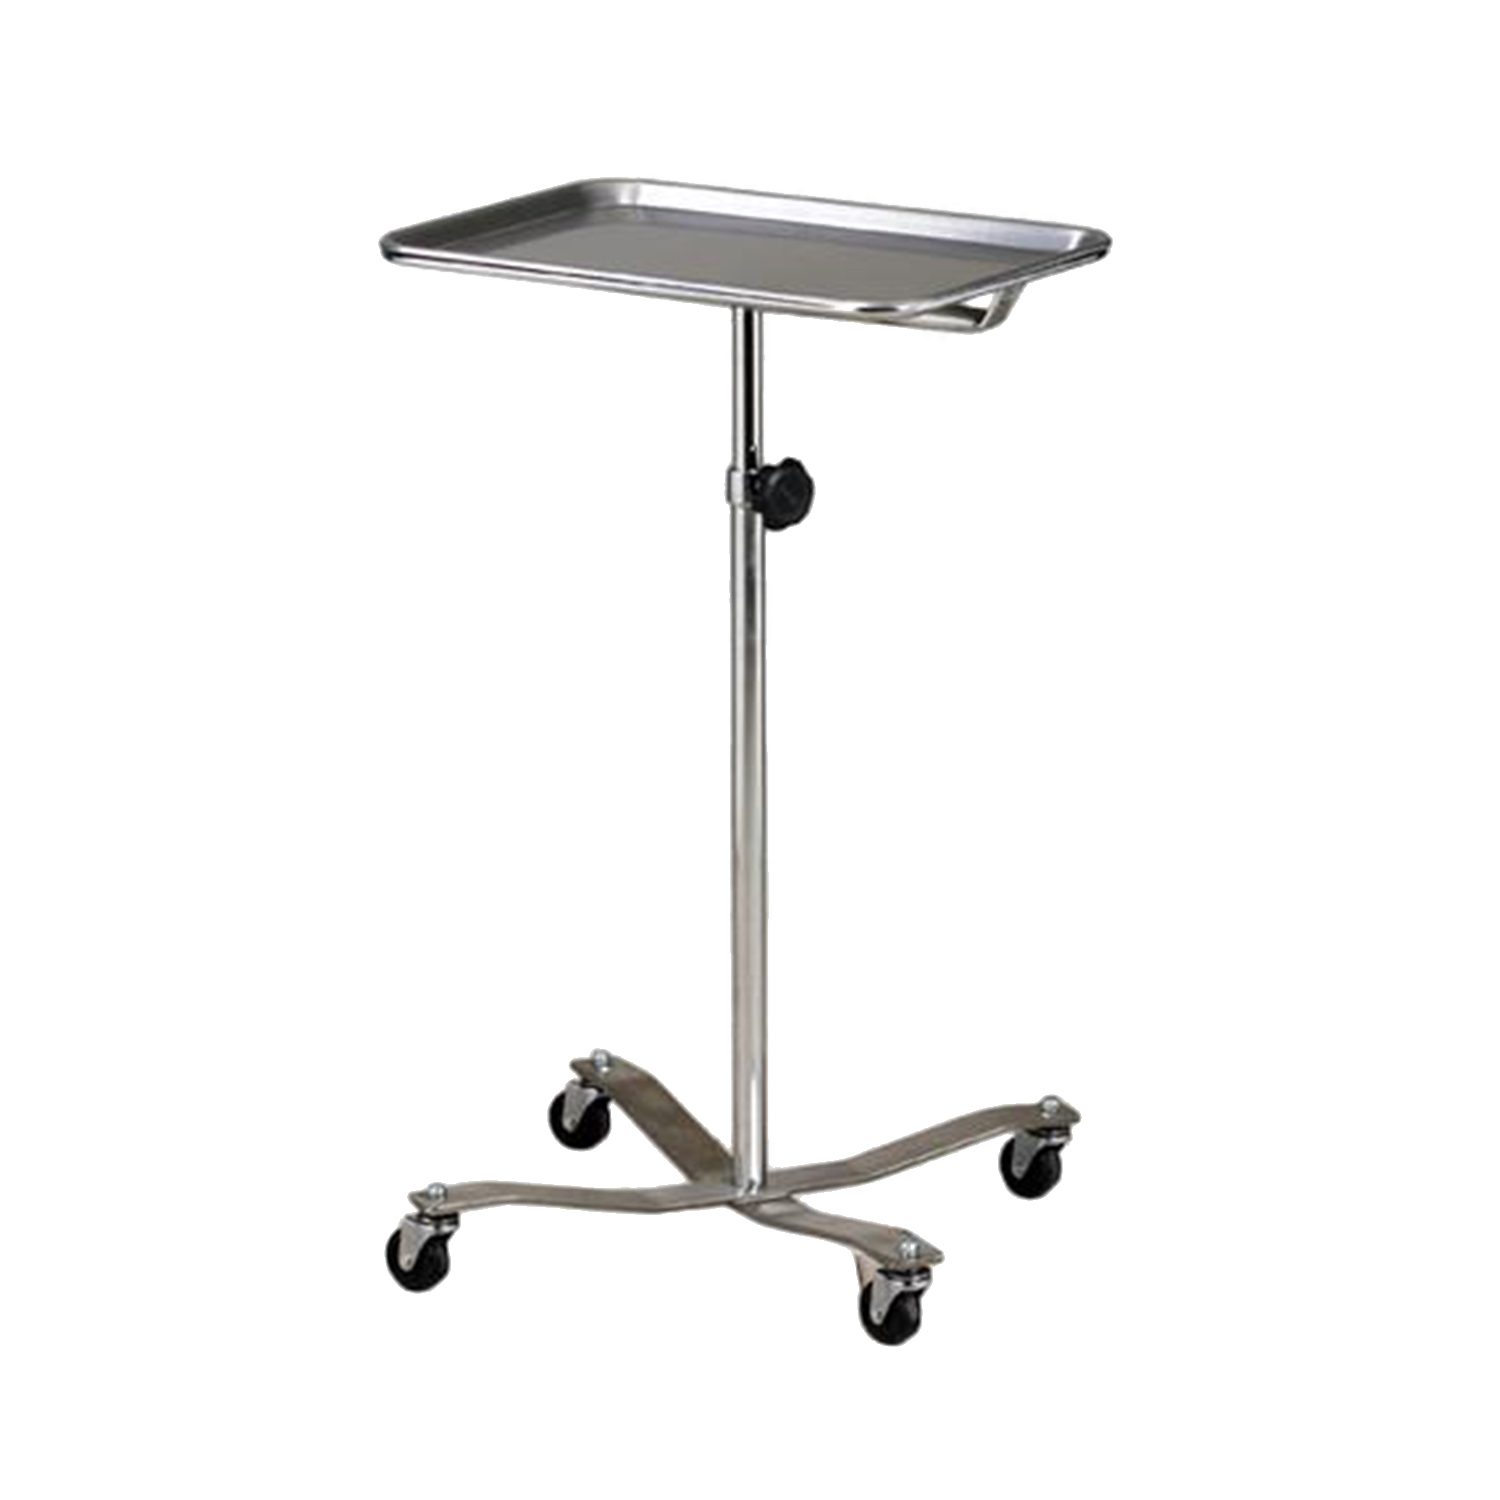 Mobile Stainless Steel Instrument Stand (Ball Bearing Casters)